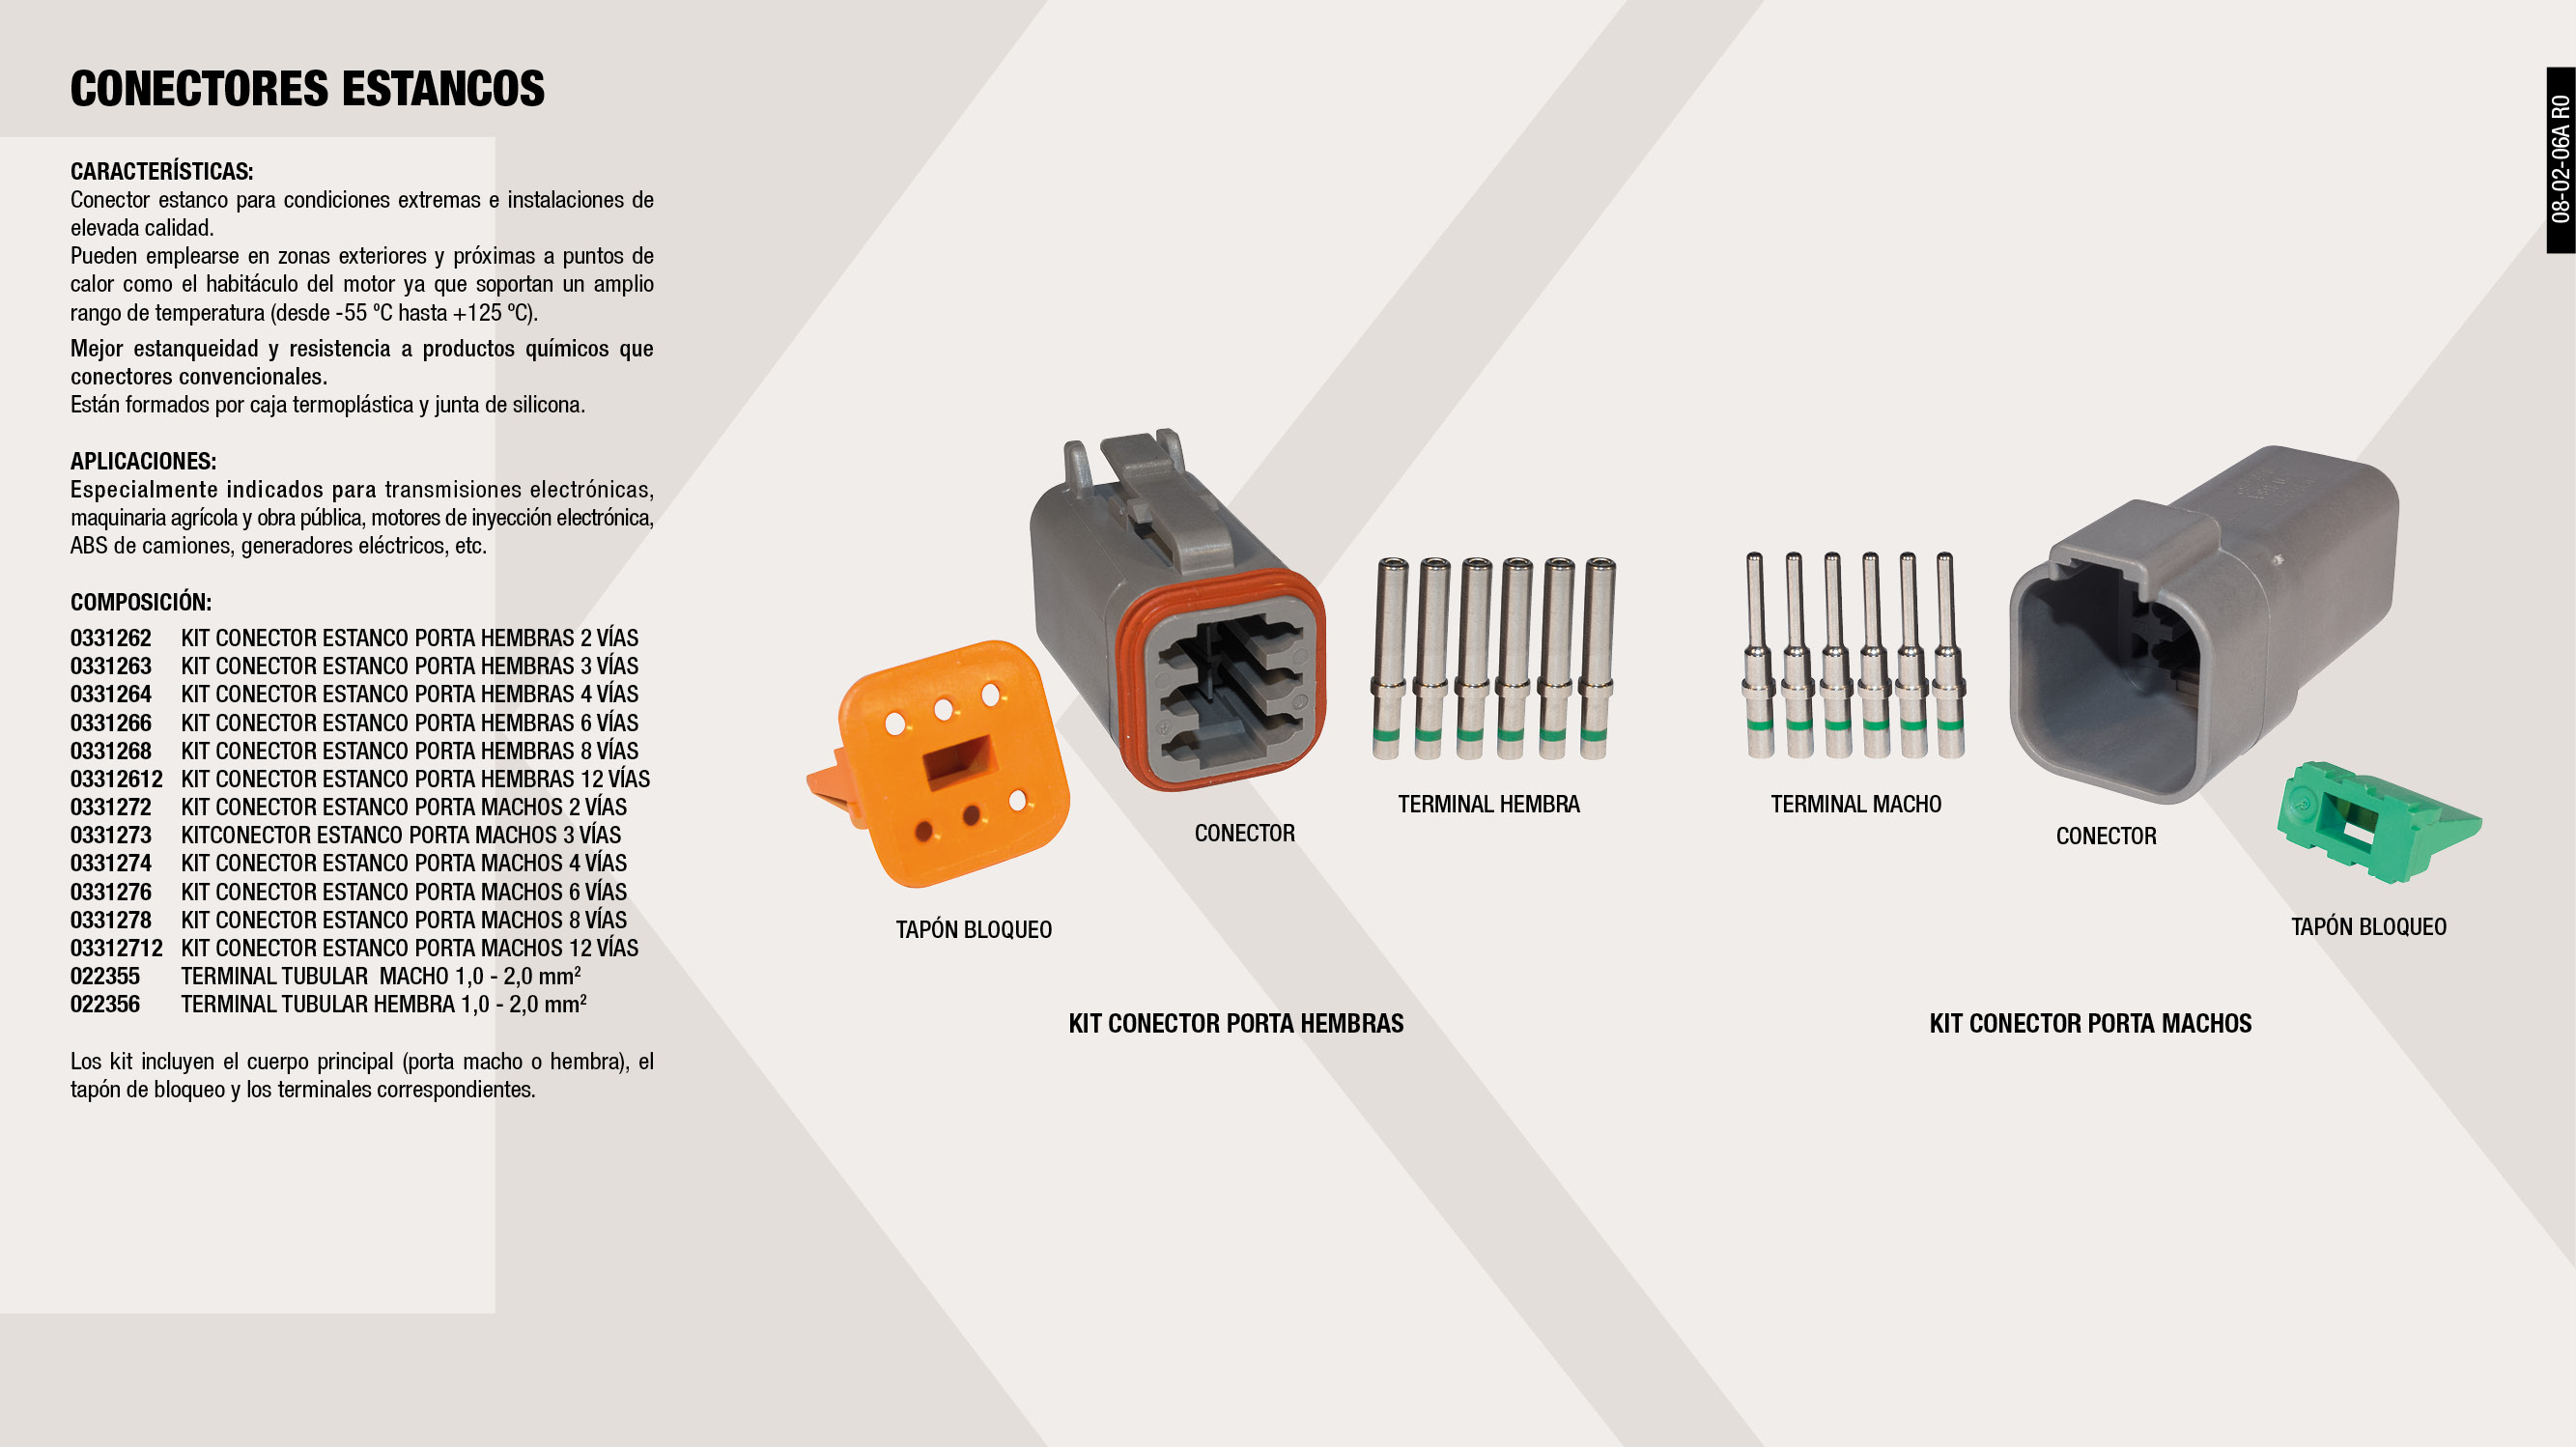 KIT CONECTOR ESTANCO PORTA HEMBRAS 4 VIAS                   ,  									TERMINAL TUBULAR  MACHO 1,0-2,0 MM2                         ,  									KIT CONECTOR ESTANCO PORTA MACHOS 4 VIAS                    ,  									KIT CONECTOR ESTANCO PORTA MACHOS 6 VIAS                    ,  									KIT CONECTOR ESTANCO PORTA HEMBRAS 2 VIAS                   ,  									TERMINAL TUBULAR HEMBRA 1,0-2,0 MM2                         ,  									KITCONECTOR ESTANCO PORTA MACHOS 3 VIAS                     ,  									KIT CONECTOR ESTANCO PORTA MACHOS 12 VIAS                   ,  									KIT CONECTOR ESTANCO PORTA HEMBRAS 6 VIAS                   ,  									KIT CONECTOR ESTANCO PORTA HEMBRAS 8 VIAS                   ,  									KIT CONECTOR ESTANCO PORTA HEMBRAS 12 VIAS                  ,  									KIT CONECTOR ESTANCO PORTA MACHOS 8 VIAS                    ,  									KIT CONECTOR ESTANC PORT-MACHO 2 VIAS                       ,  									KIT CONECTOR ESTANCO PORTA HEMBRAS 3 VIAS                   ,